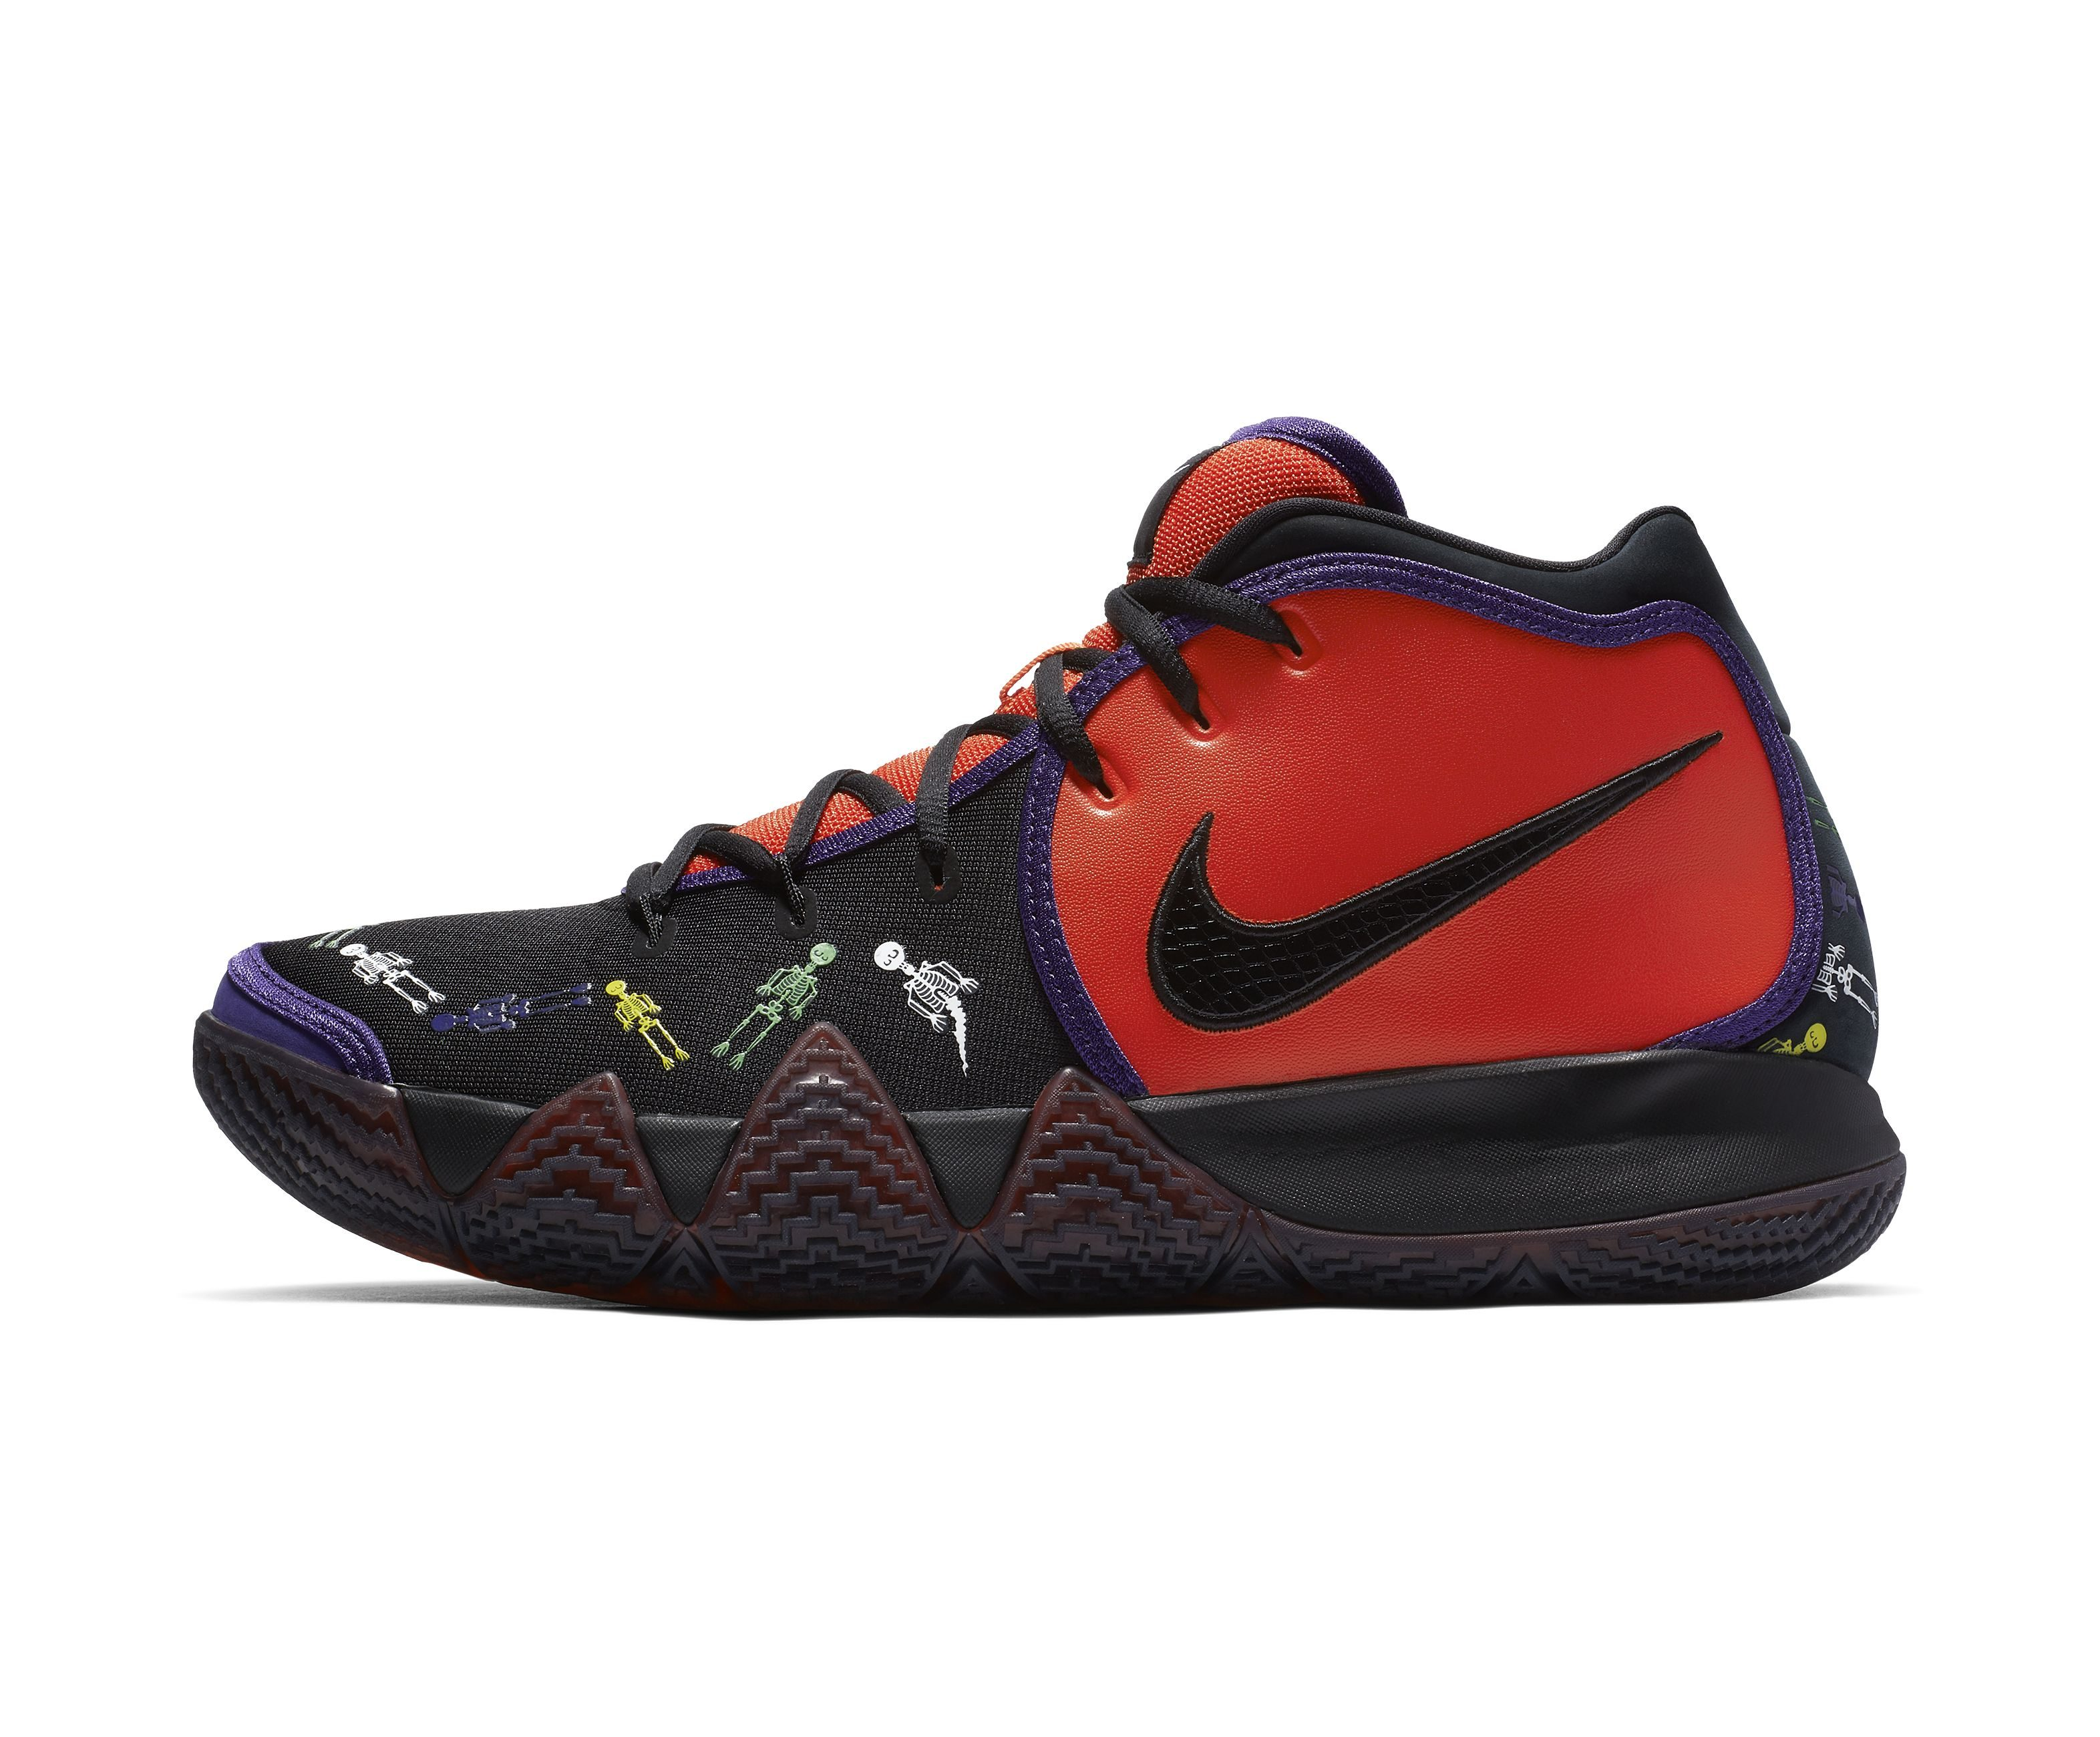 the best attitude 34db9 6d8c2 Kyrie 4 'Day of the Dead' Quickstrike for Halloween Surfaces ...